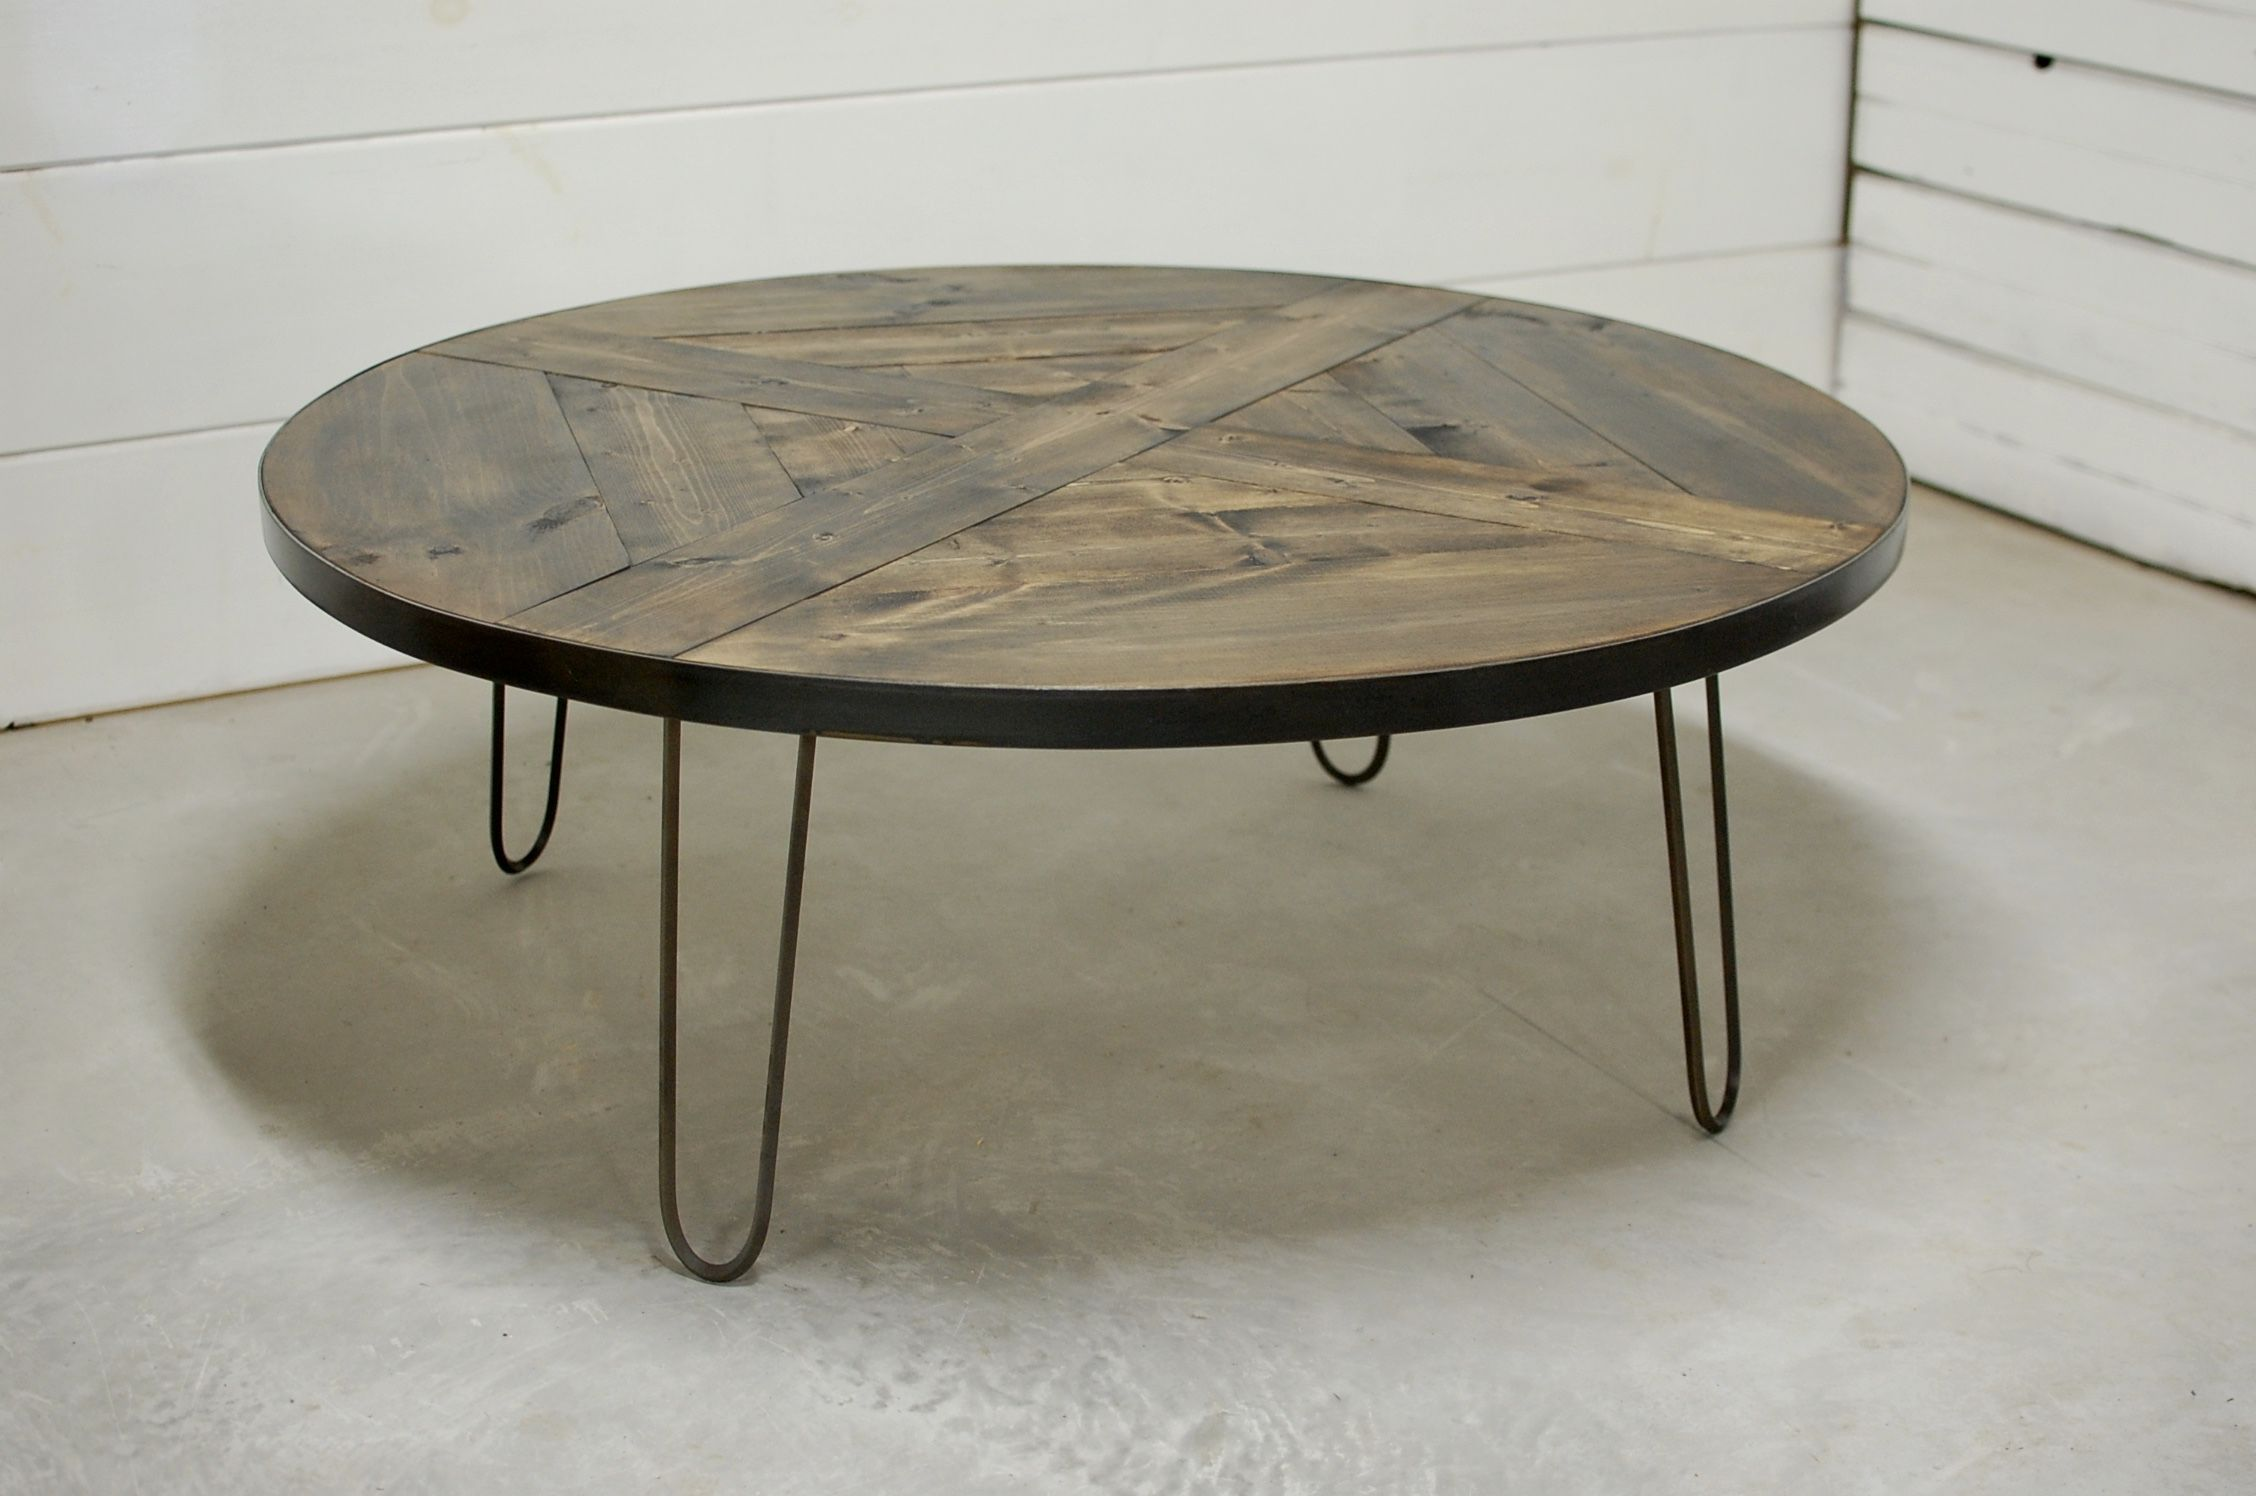 Rachela Round Hairpin Coffee Table Southern Sunshine Coffee Table Hairpin Coffee Table Table [ 1496 x 2256 Pixel ]